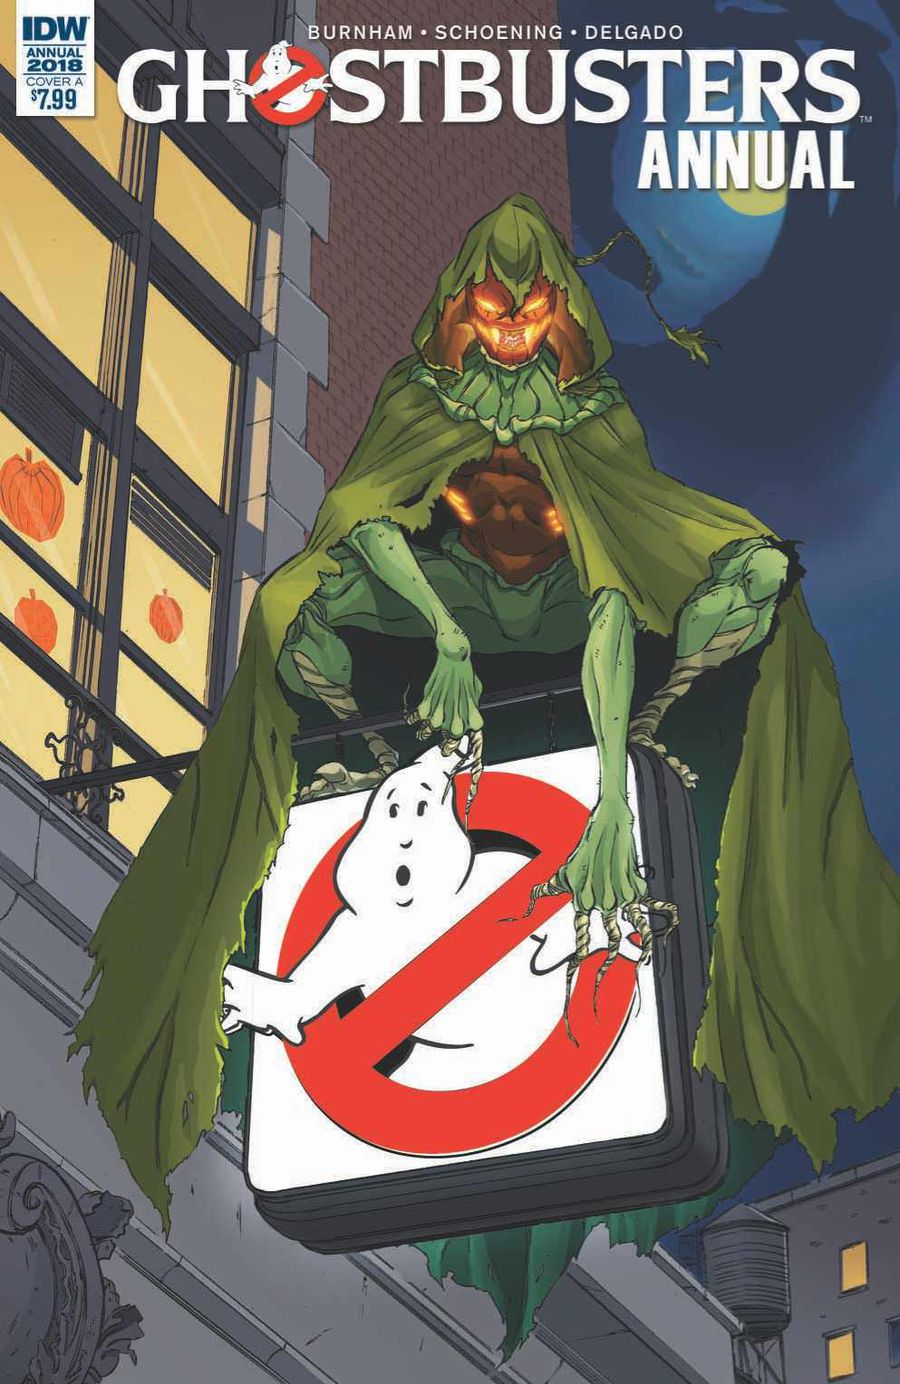 Ghostbusters Annual 2018 Cover